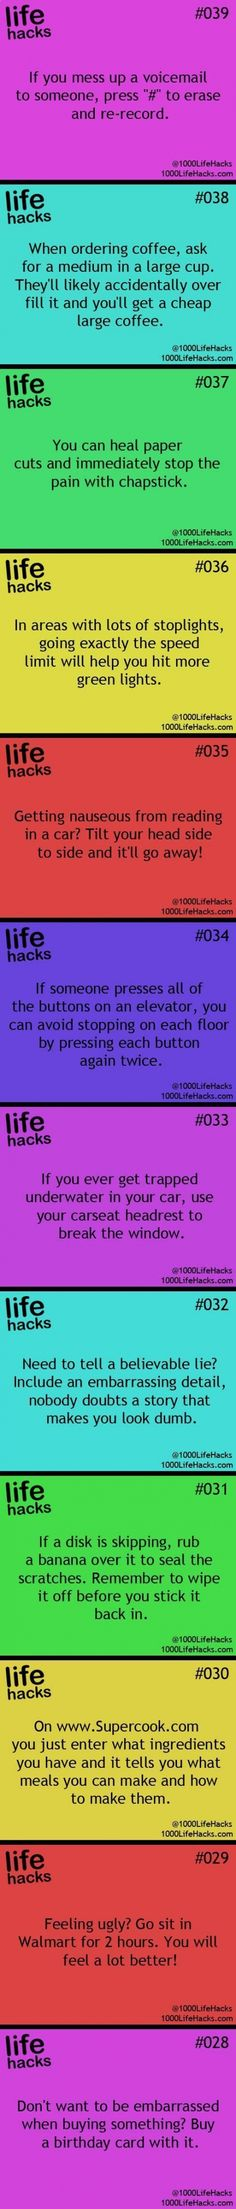 Random Life Facts. Some of these are actually kinda interesting:) and some are totally hilarious.